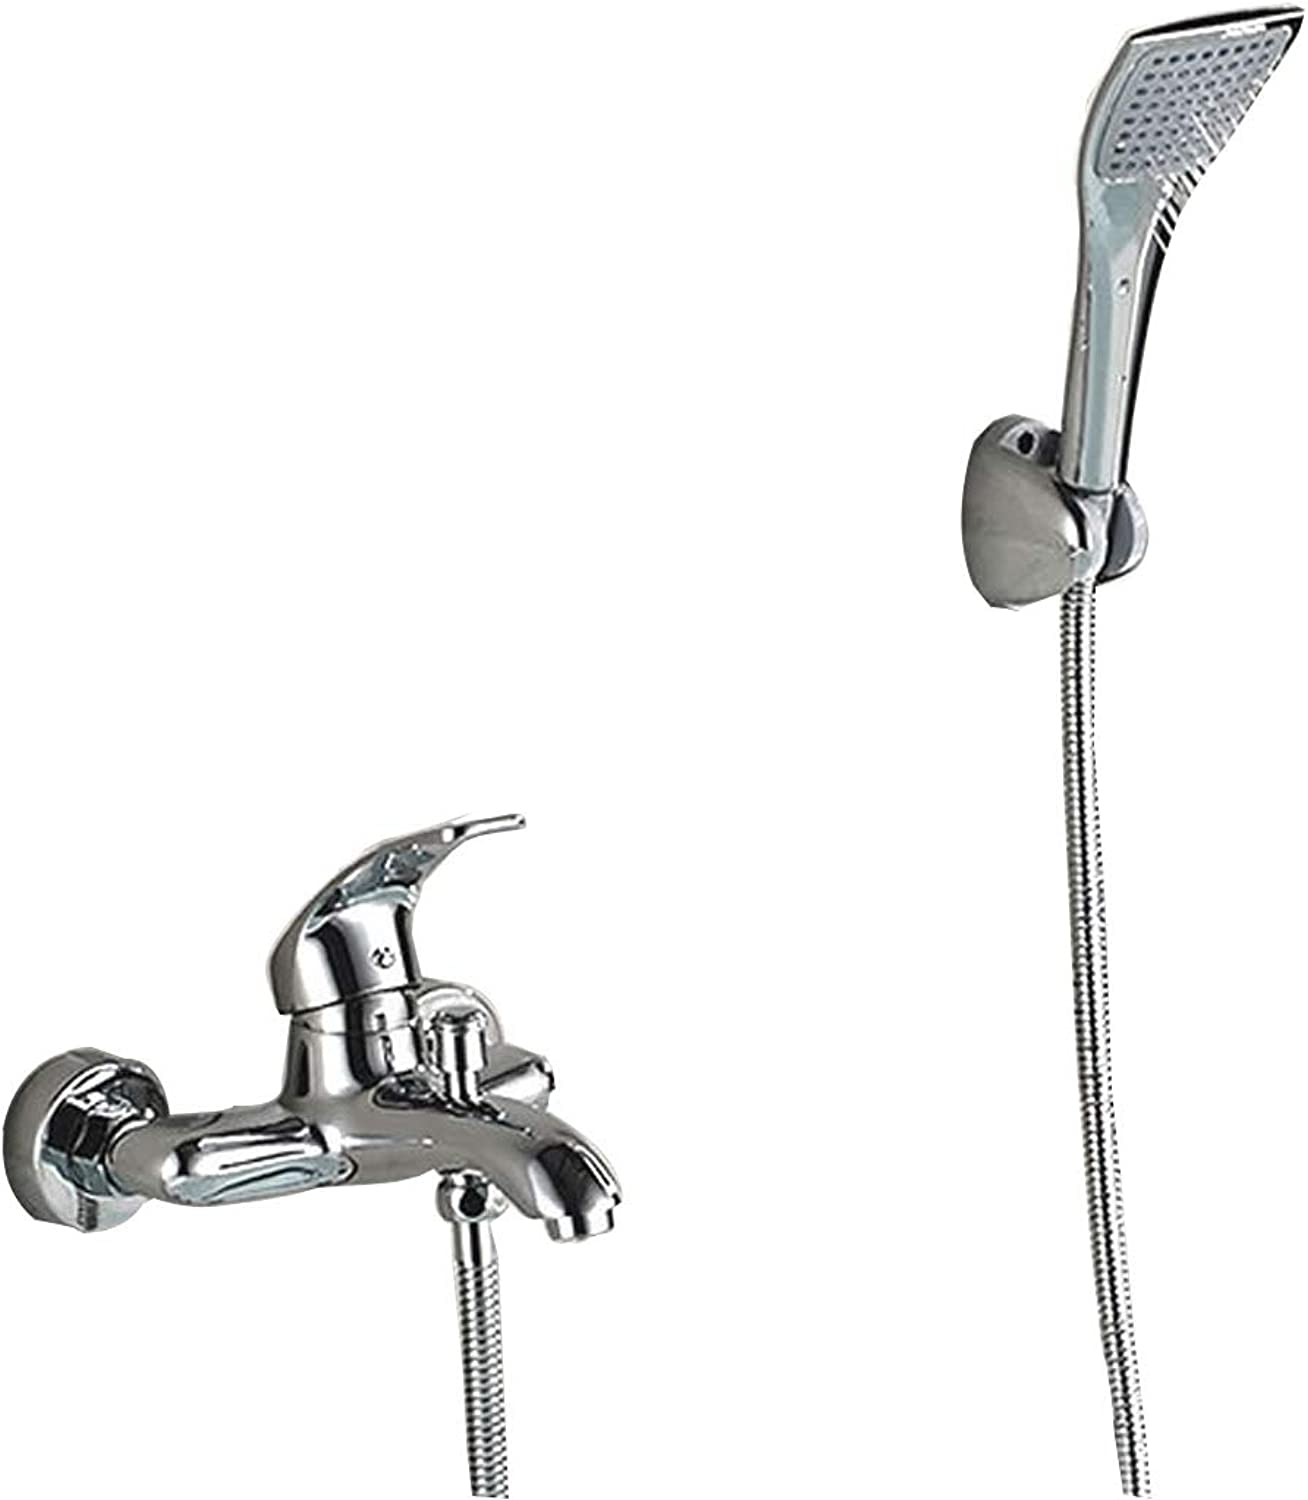 Tochange Simple Wall Mounted Shower Mixer Set In Bath Shower System With ABS Handheld Shower + Shower Tap,Bathroom Hardware Accessories